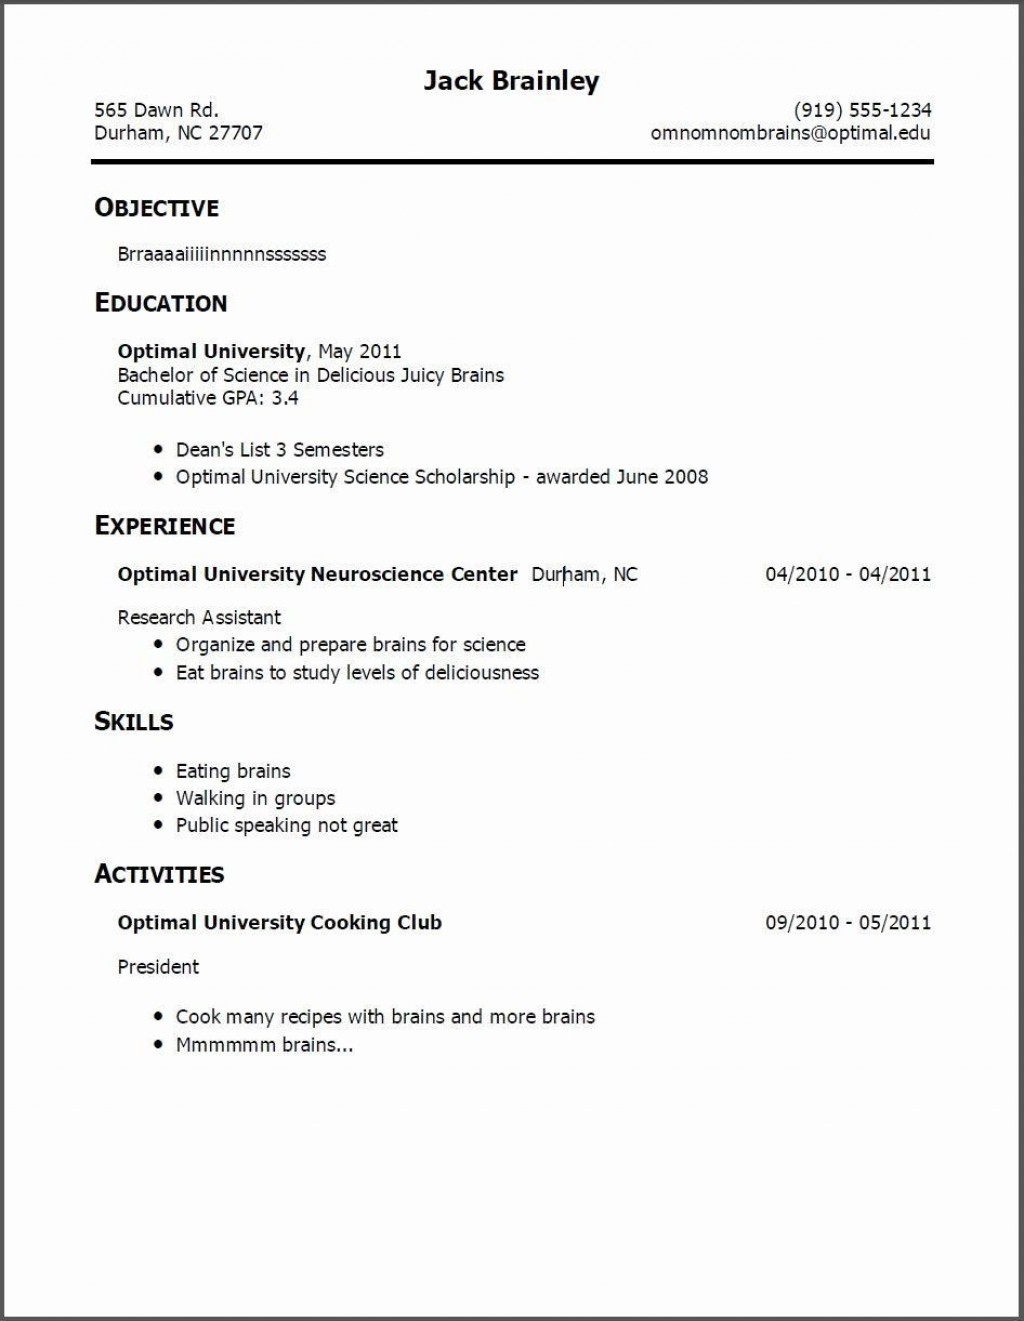 004 Remarkable First Time Resume Template Photo  Job Seeker Teenage Sample For TeenagerLarge